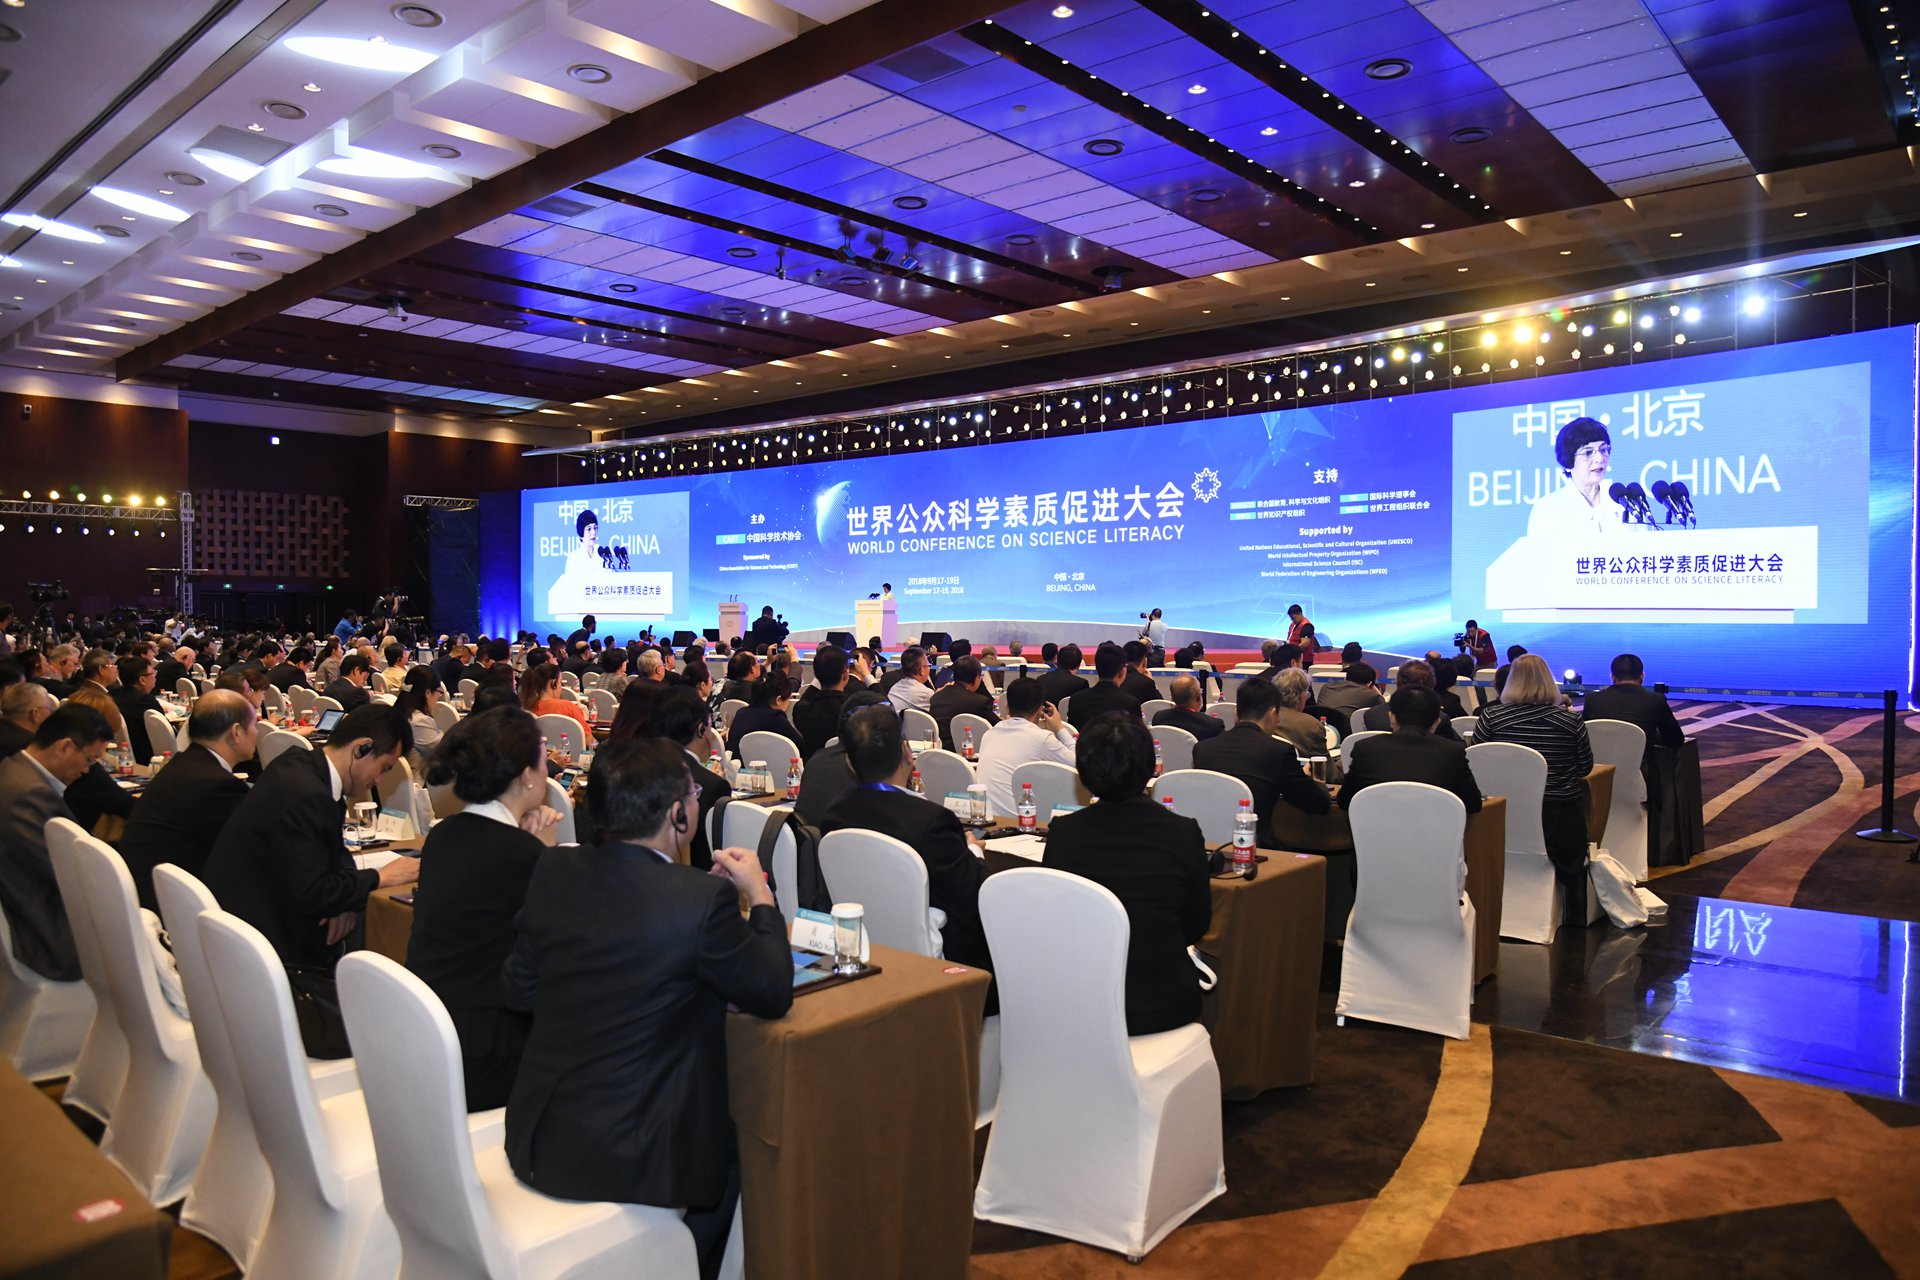 World Conference on Science Literacy 2018 held in Beijing